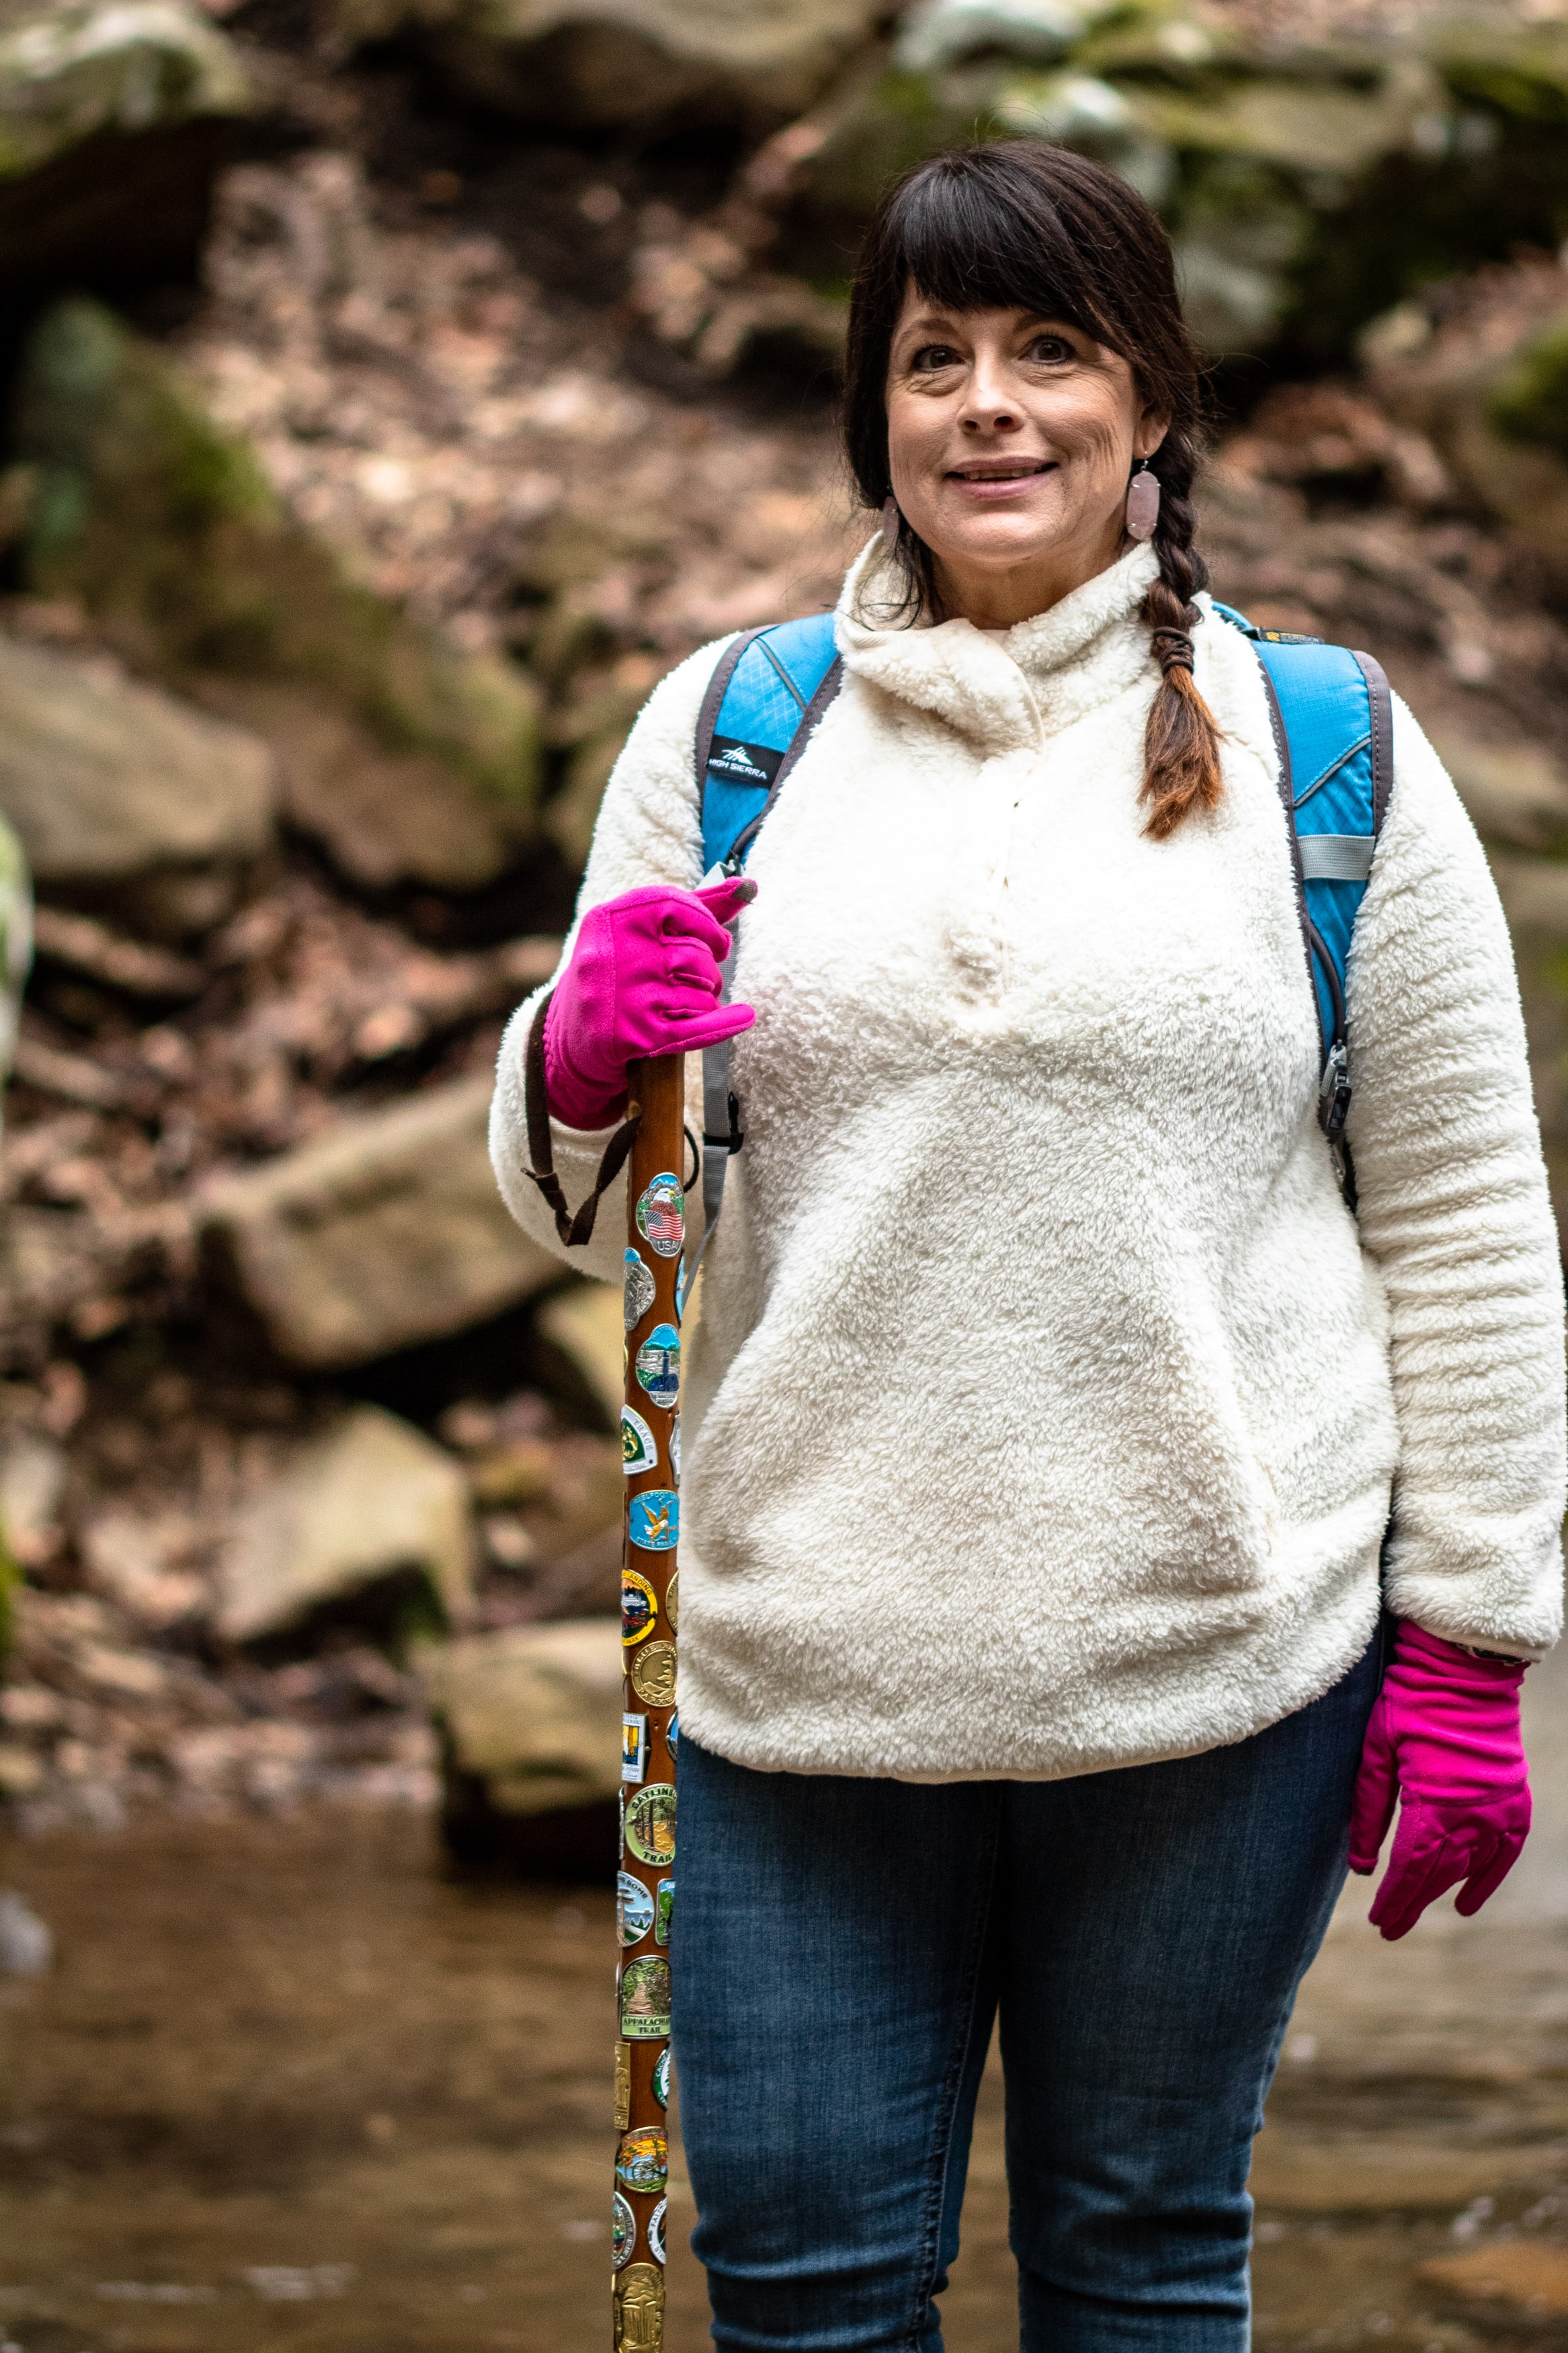 International Women's Day!  Hiking the Cloudland Canyon State Park trails, checking out the waterfalls, and enjoying the outdoors. Women are tough and adventurous!